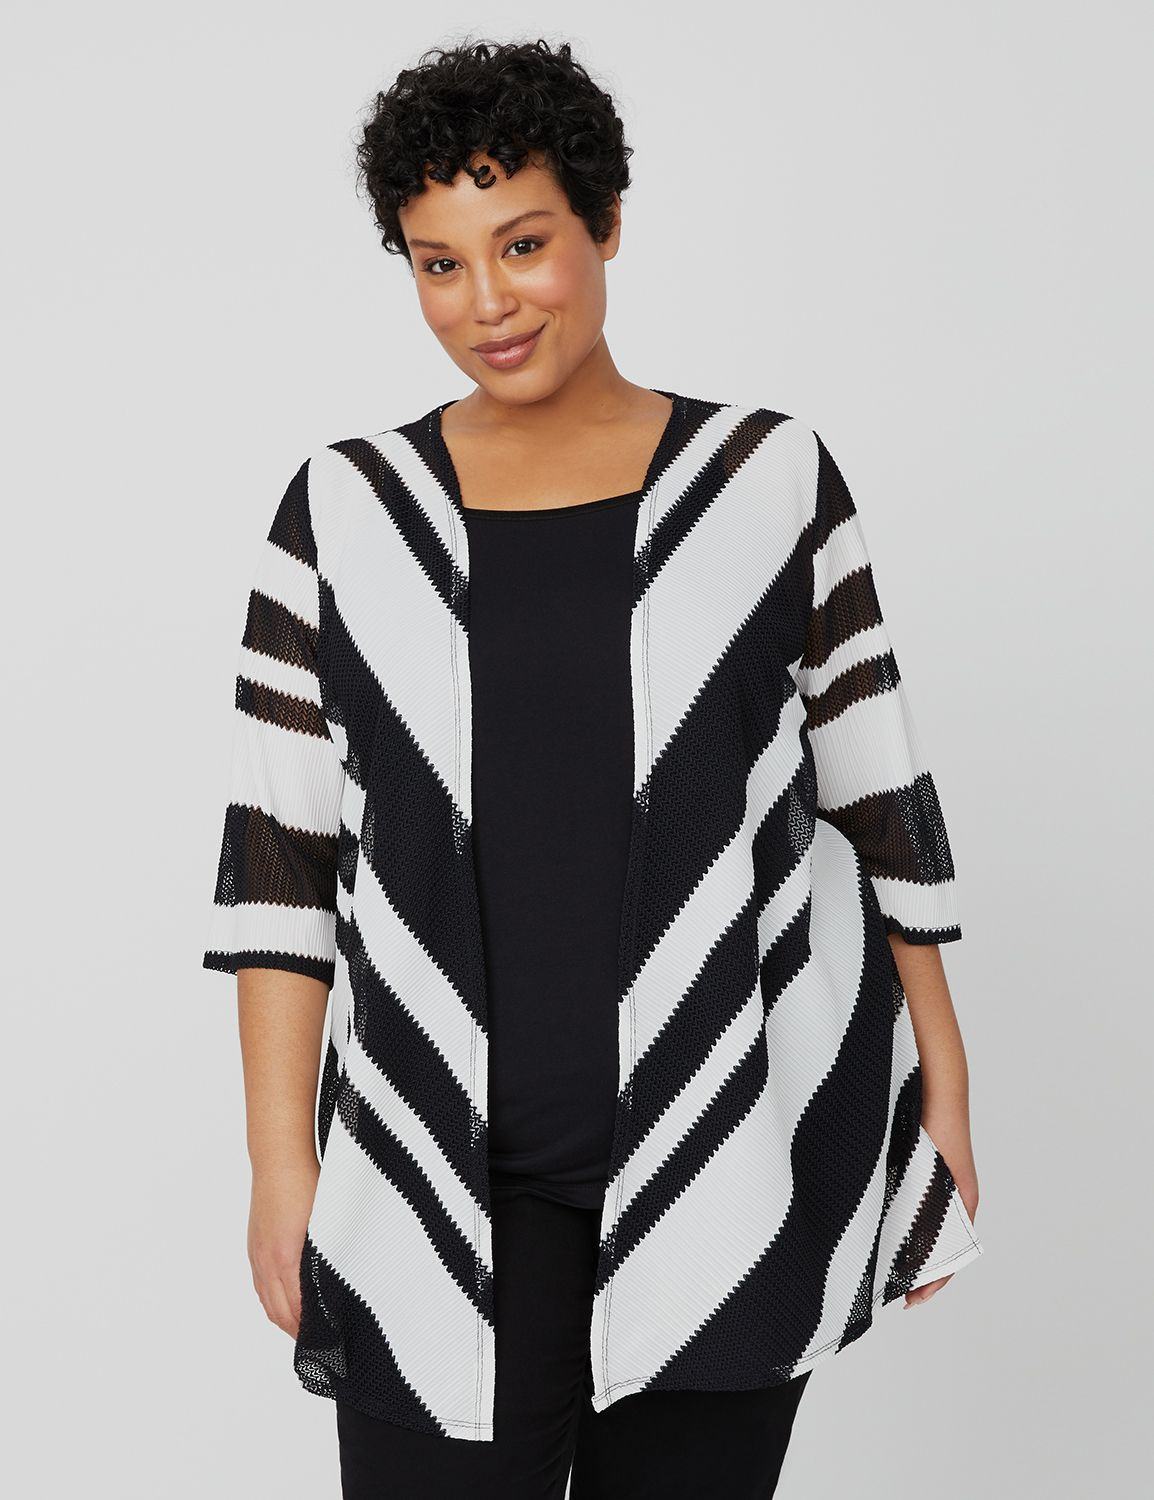 Cascading Herringbone Cardigan 1089908 BLK/WHT HERRINGBONE COLORBL MP-300099907